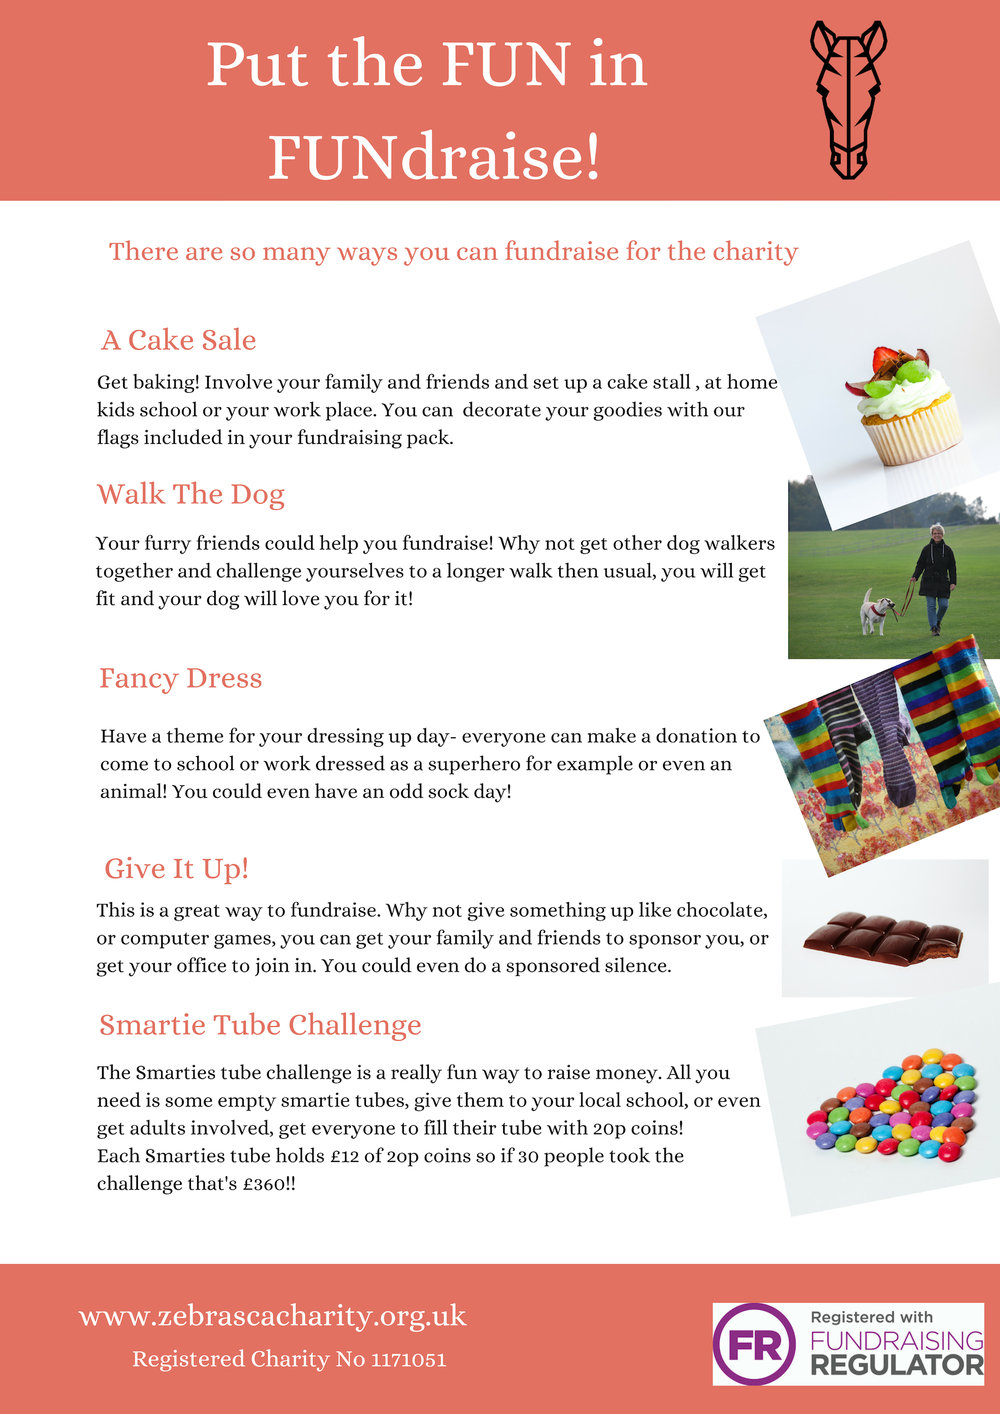 FUN WAYS TO FUNDRAISE